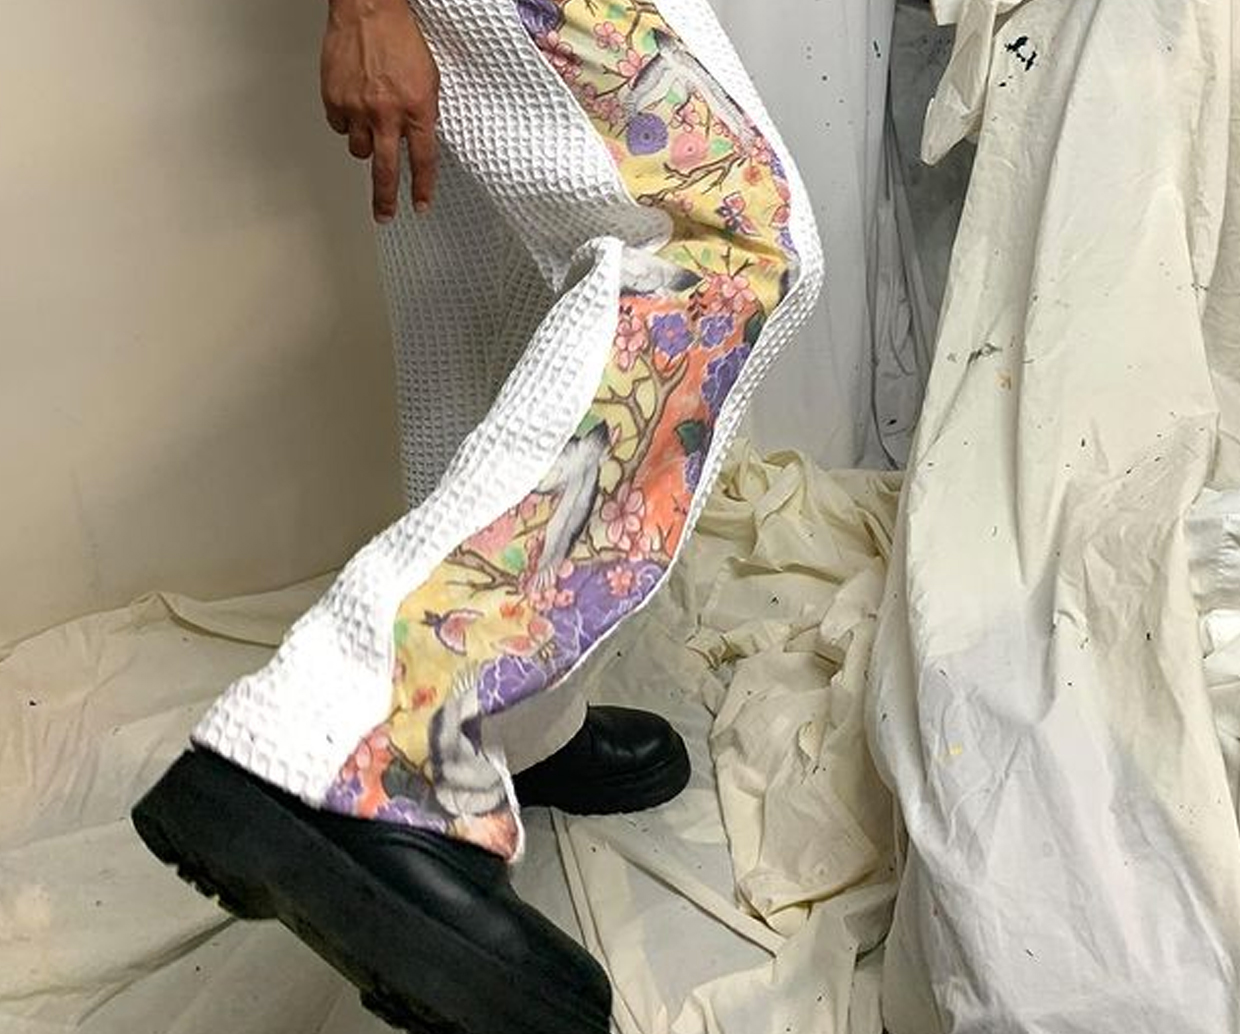 groovy pants on person kicking leg up